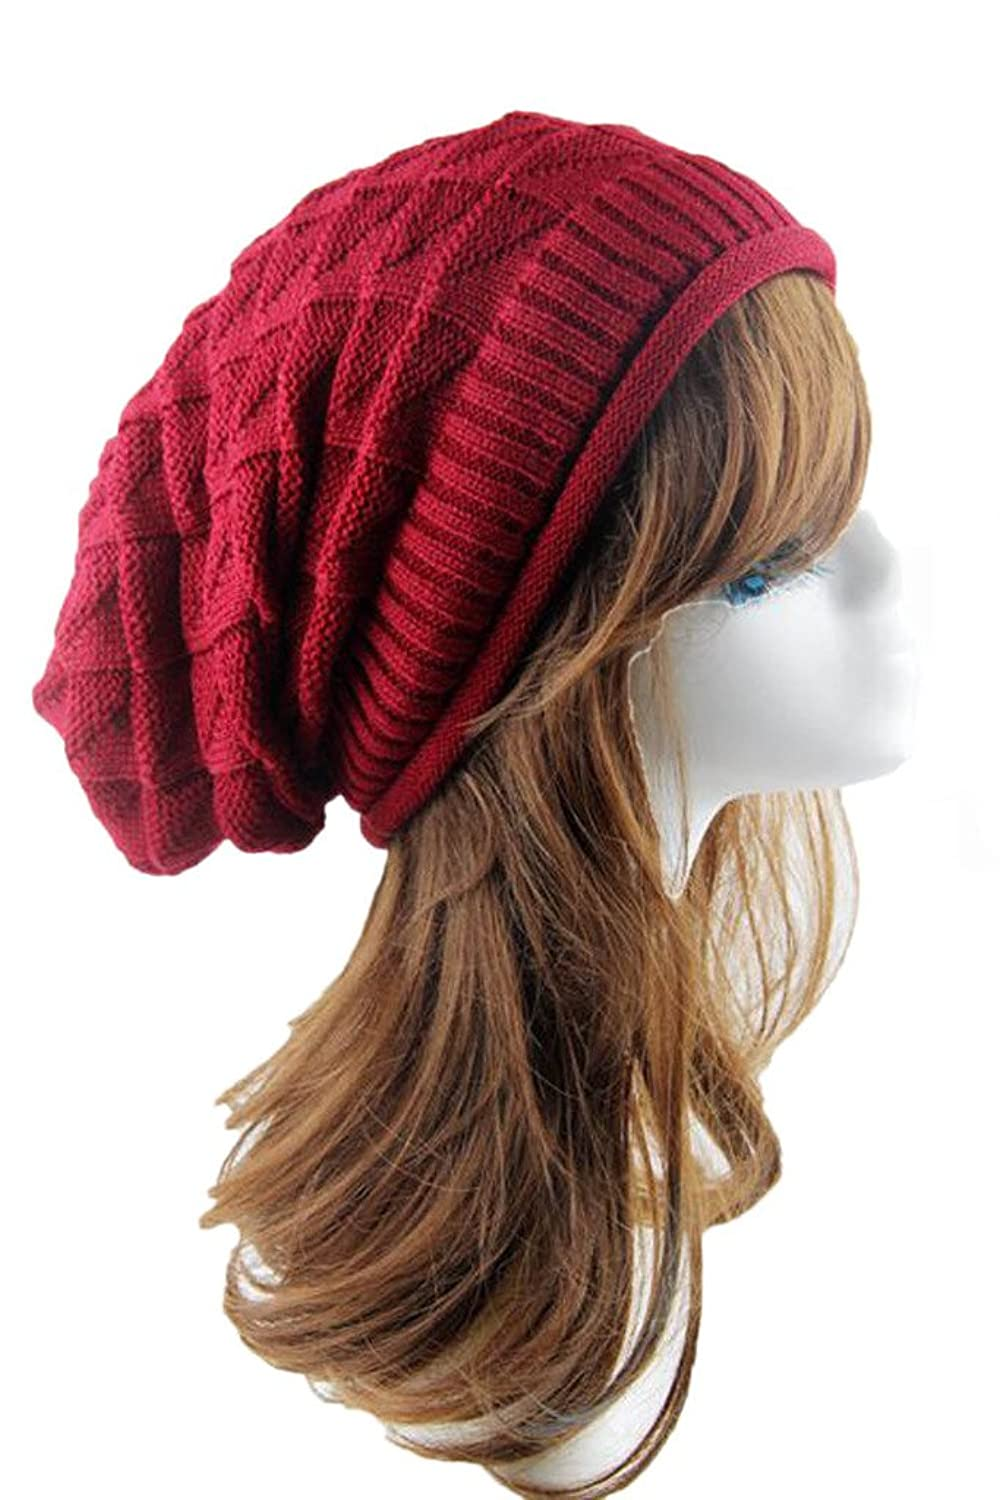 I'MQueen Women's Winter Warm Chunky Crochet Slouchy Beanie Hat Knitted Skull Cap